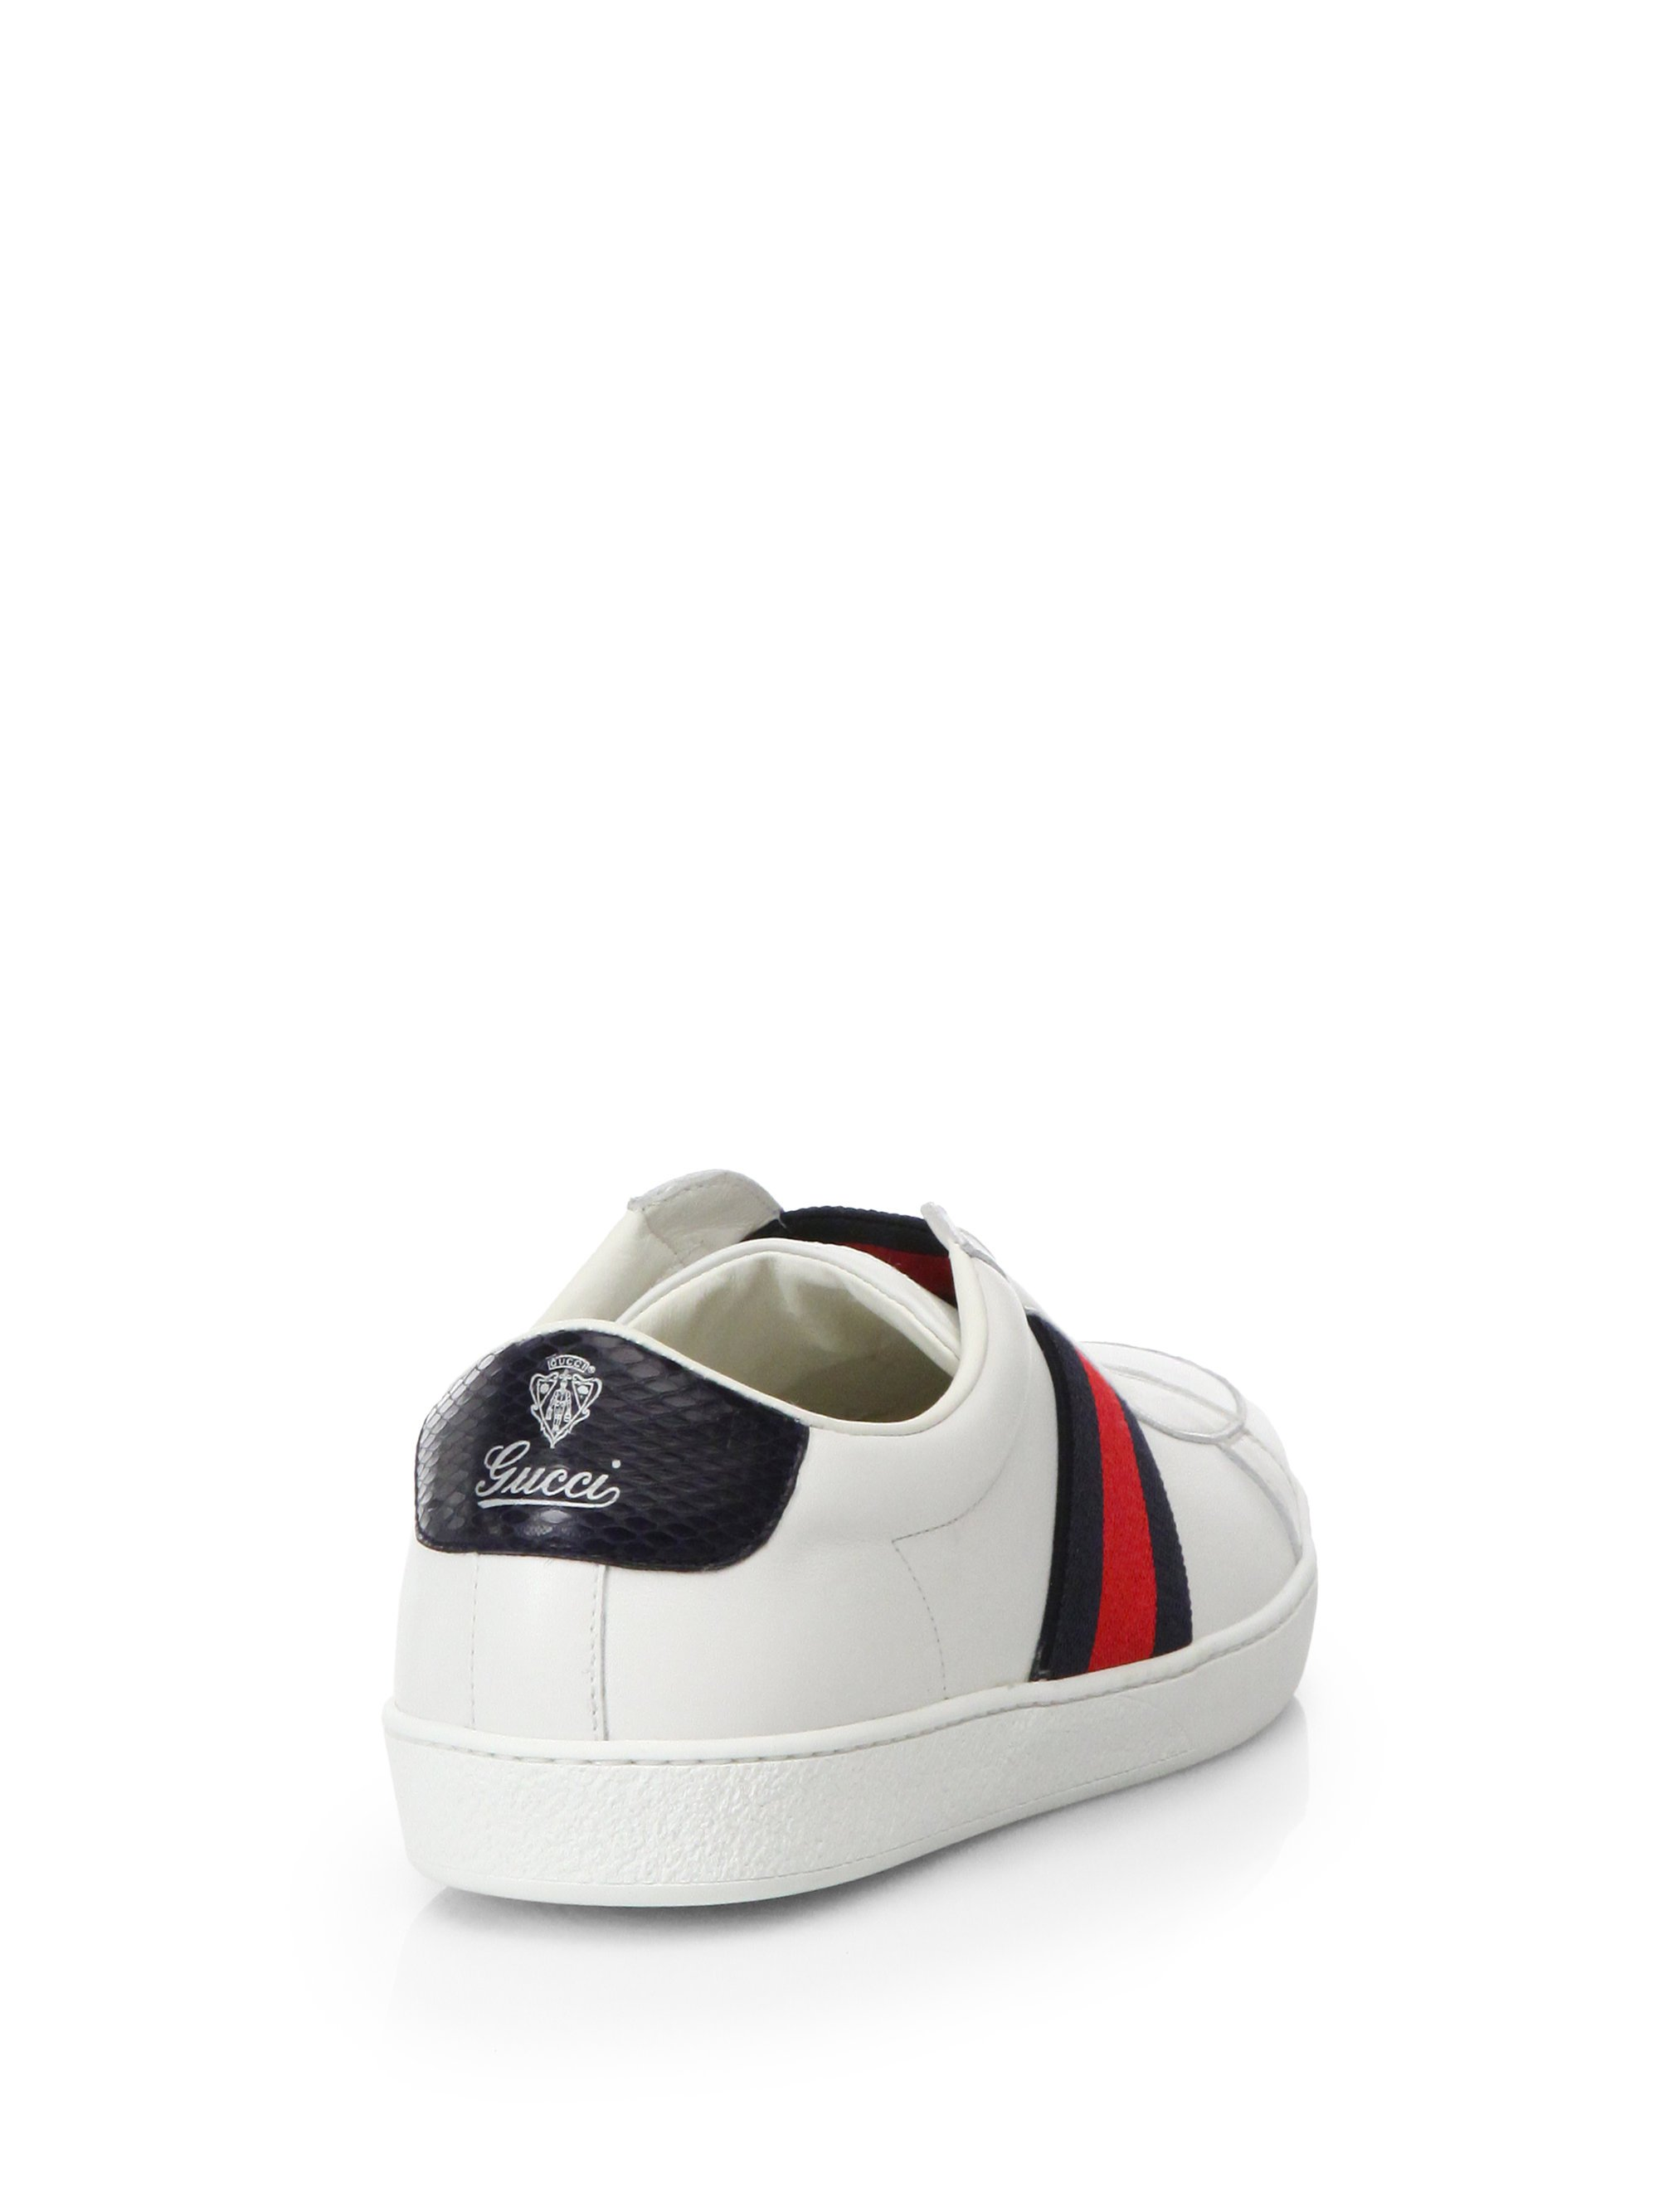 gucci brooklyn slip on sneakers in white for men lyst. Black Bedroom Furniture Sets. Home Design Ideas